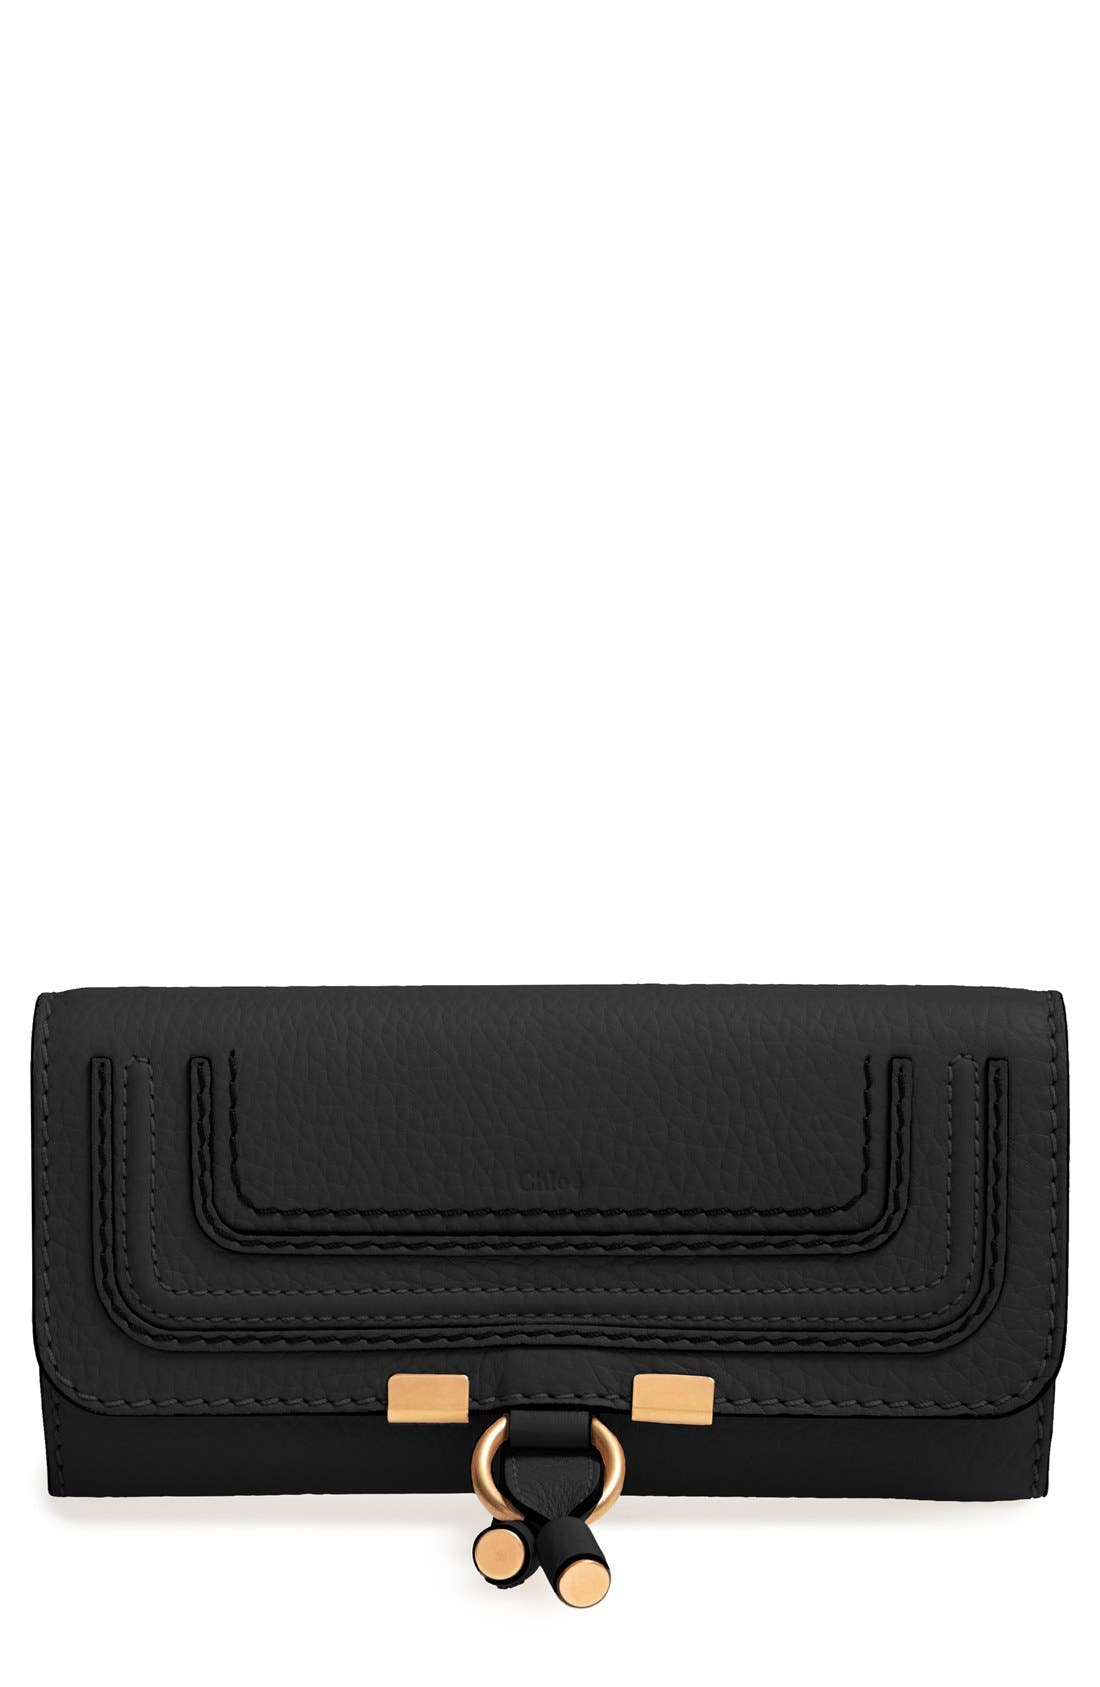 Chloé 'Marcie - Long' Leather Flap Wallet